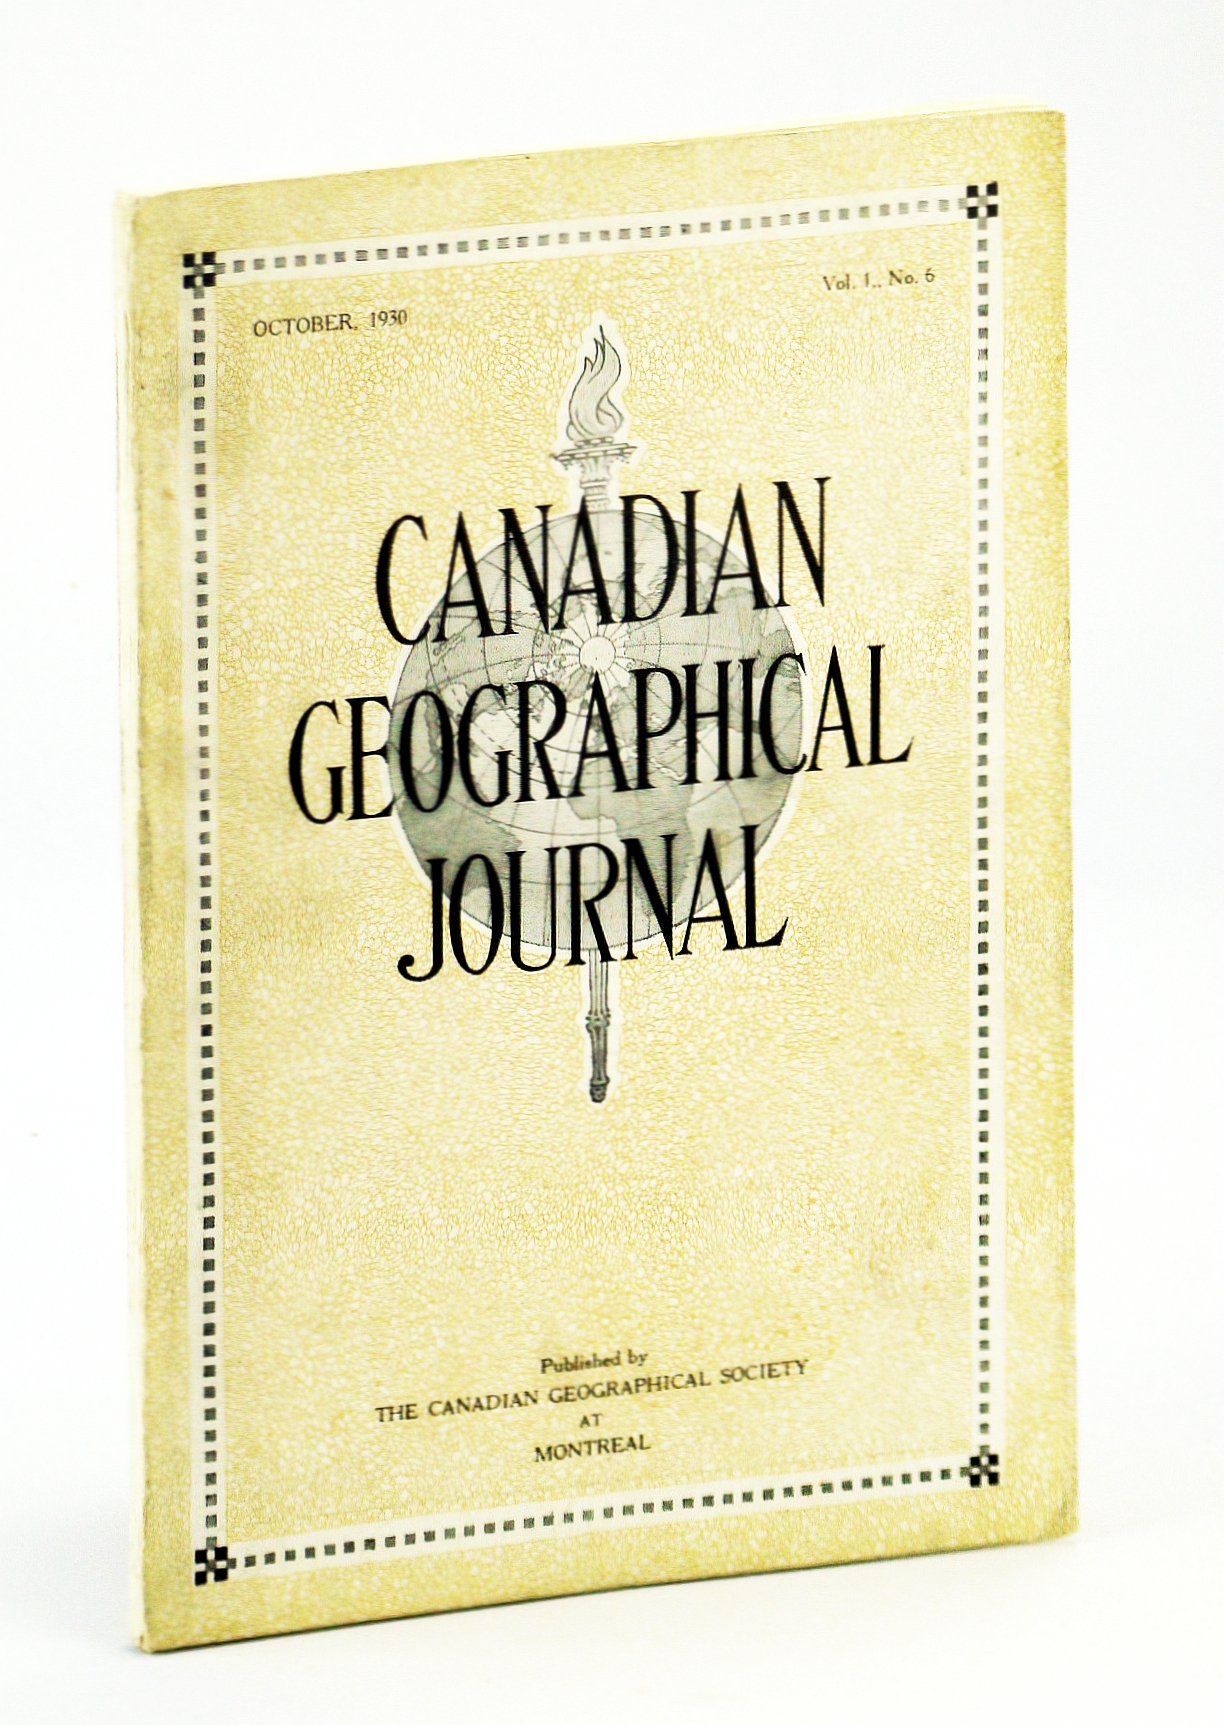 Image for Canadian Geographical Journal, October [Oct.] 1930, Vol. I, No. 6 - The Story of the R-100 Airship